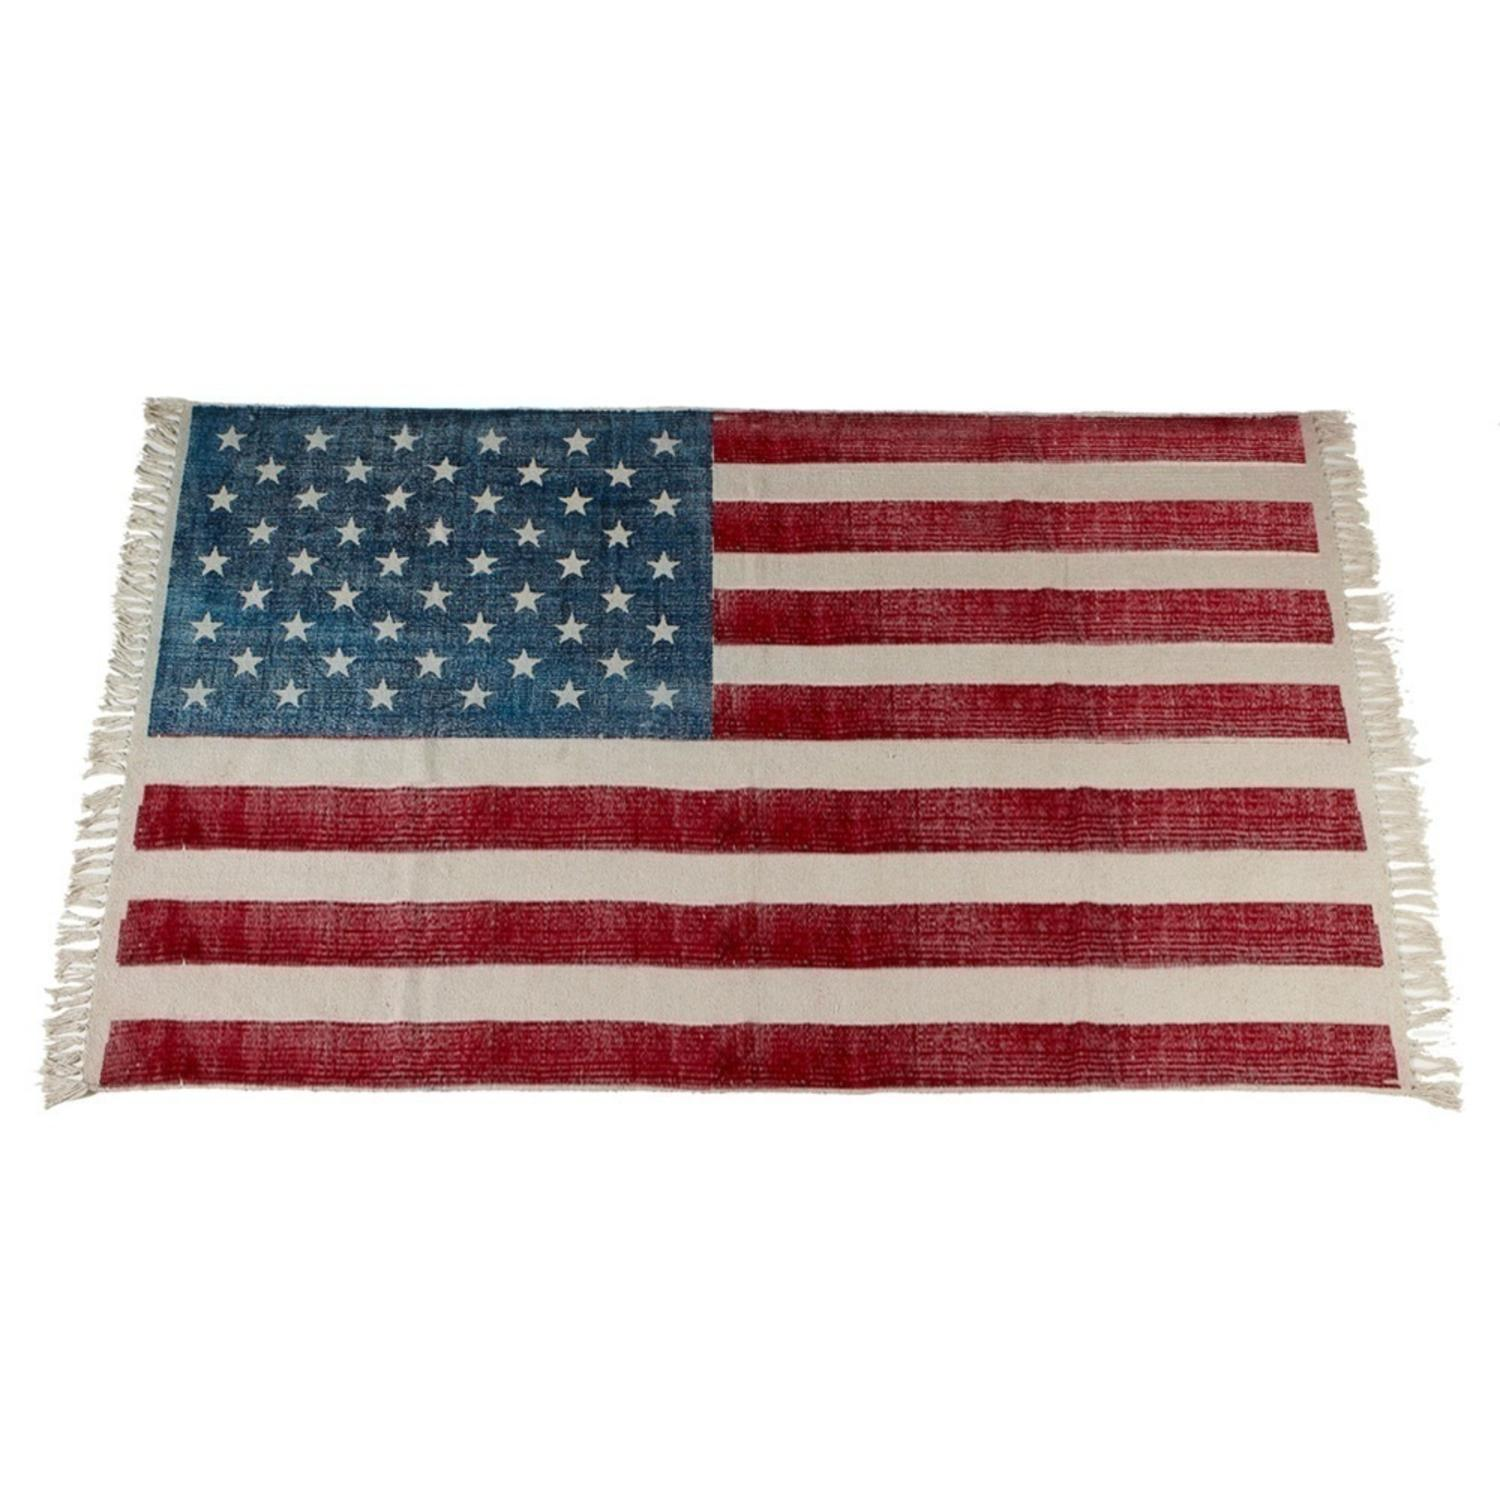 3' x 5' Red, White and Blue American Flag Printed Wall Hanging Rectangular Rug with Fringes by Diva At Home